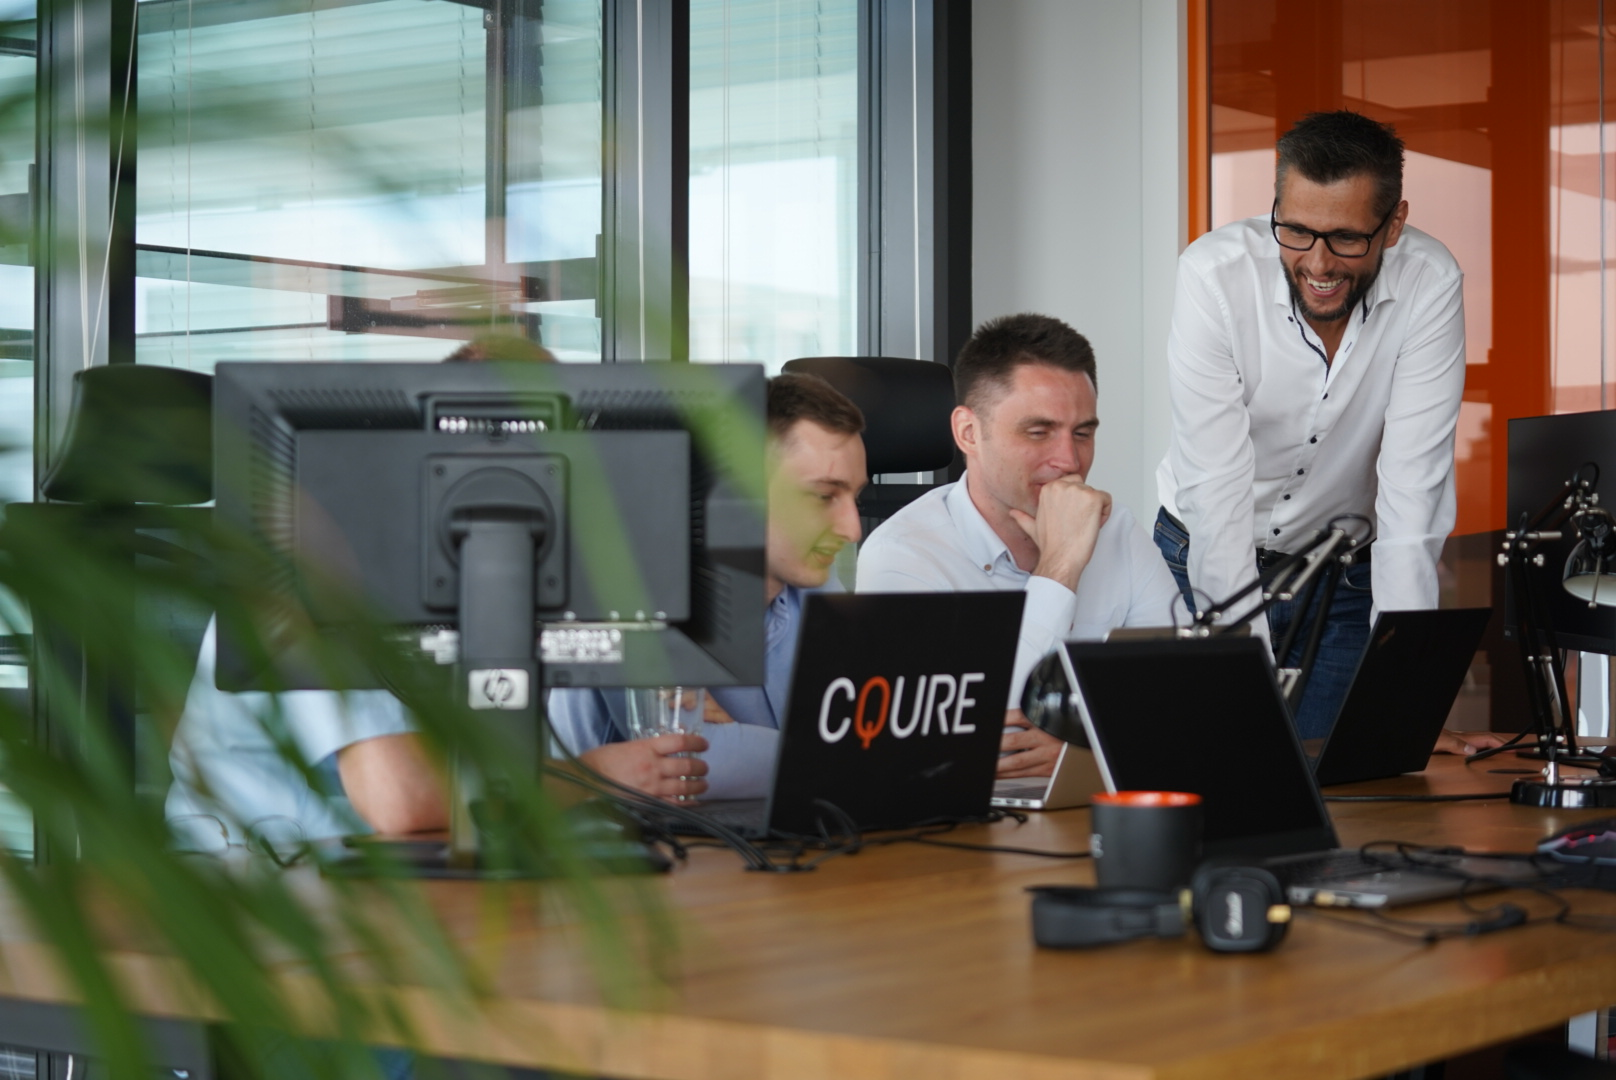 http://Cqure-how-we-work-4